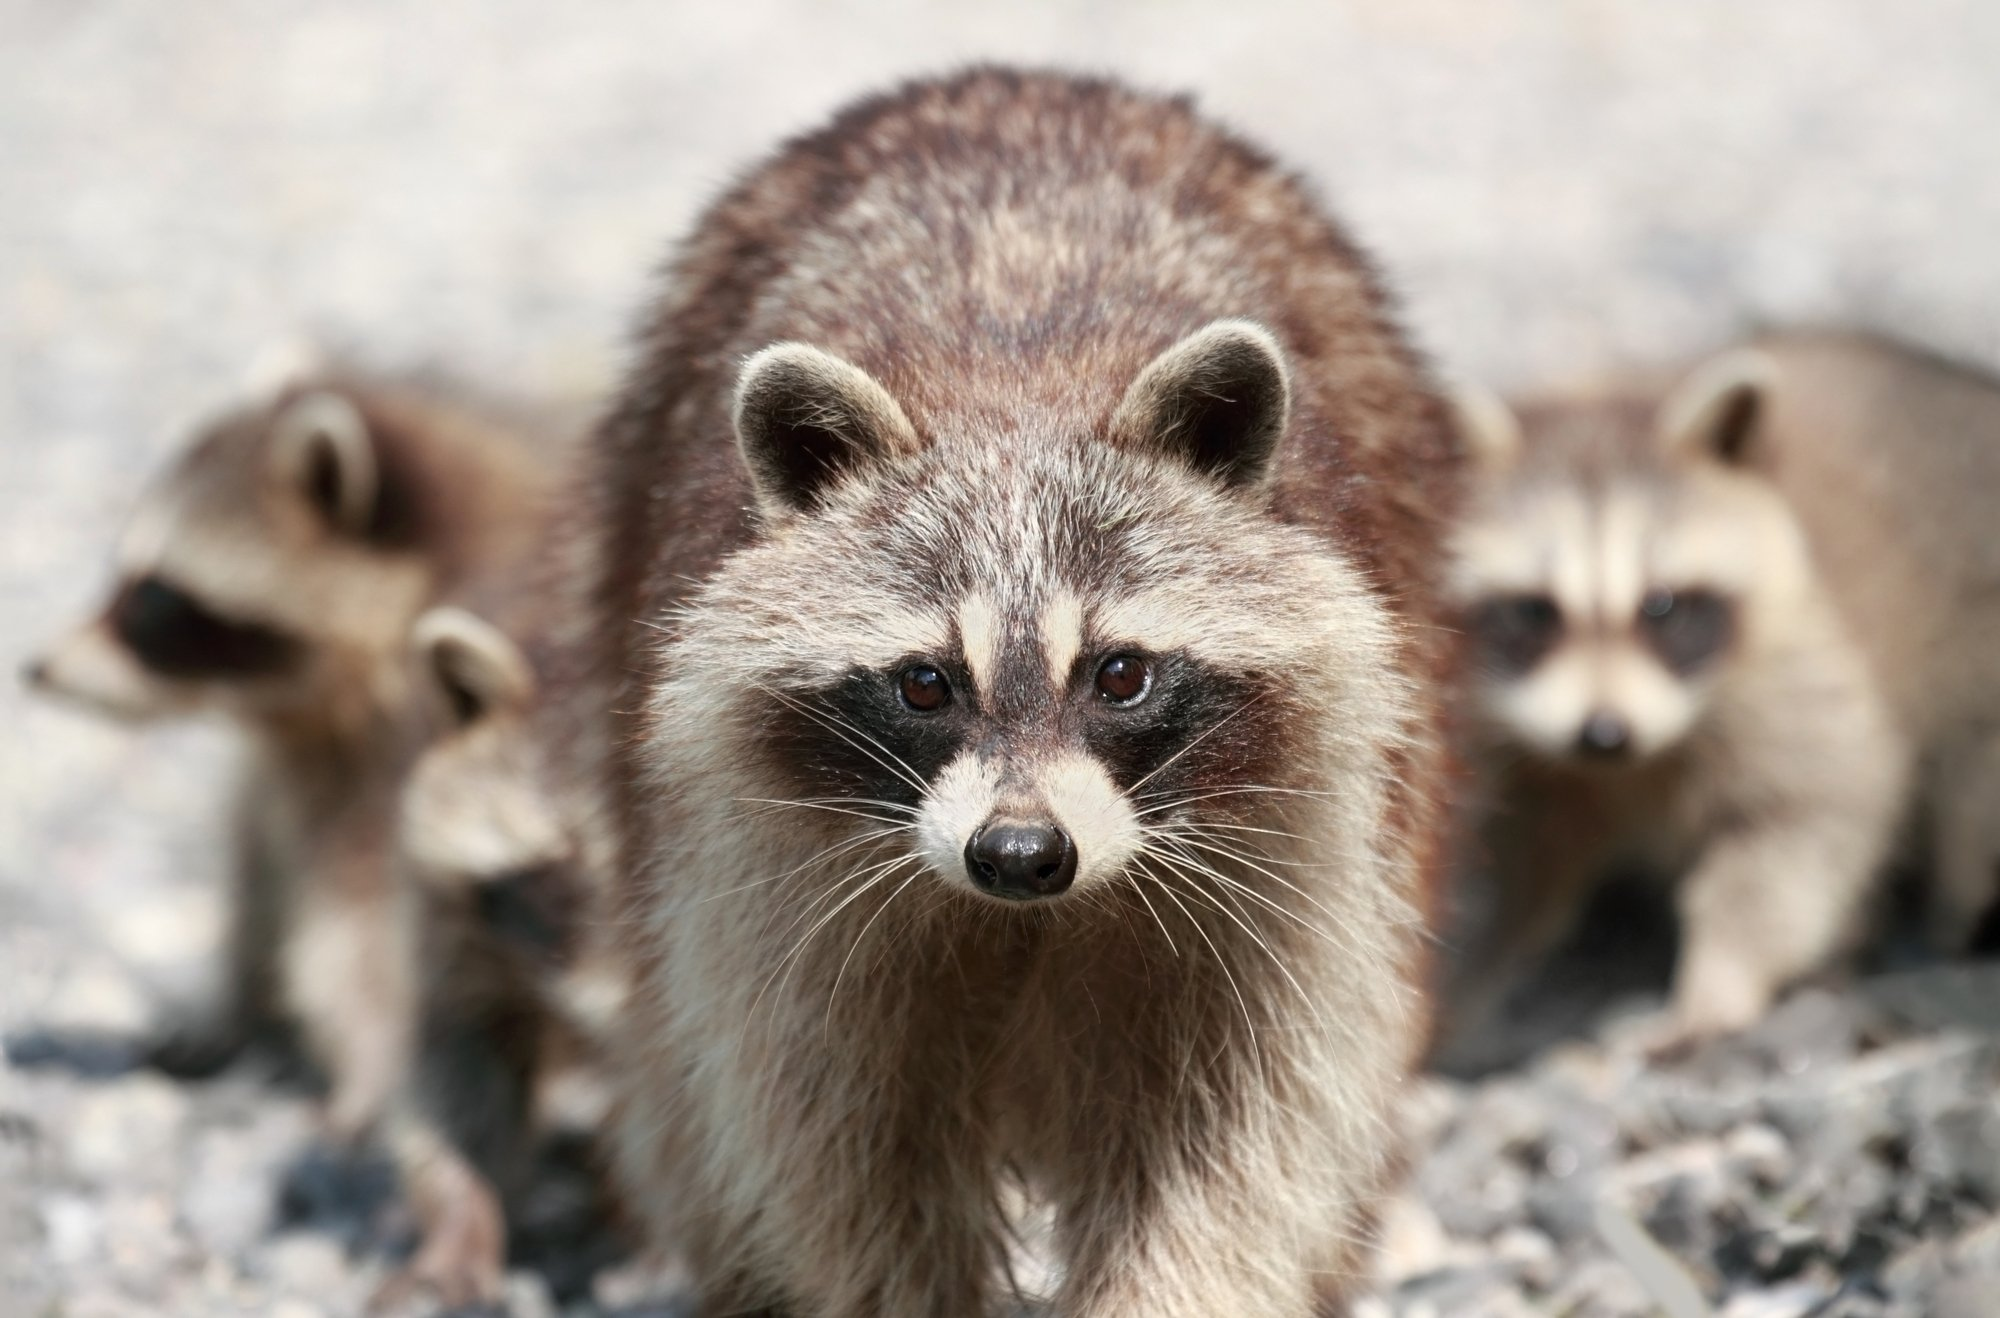 Racoon Removal In Schenectady, NY